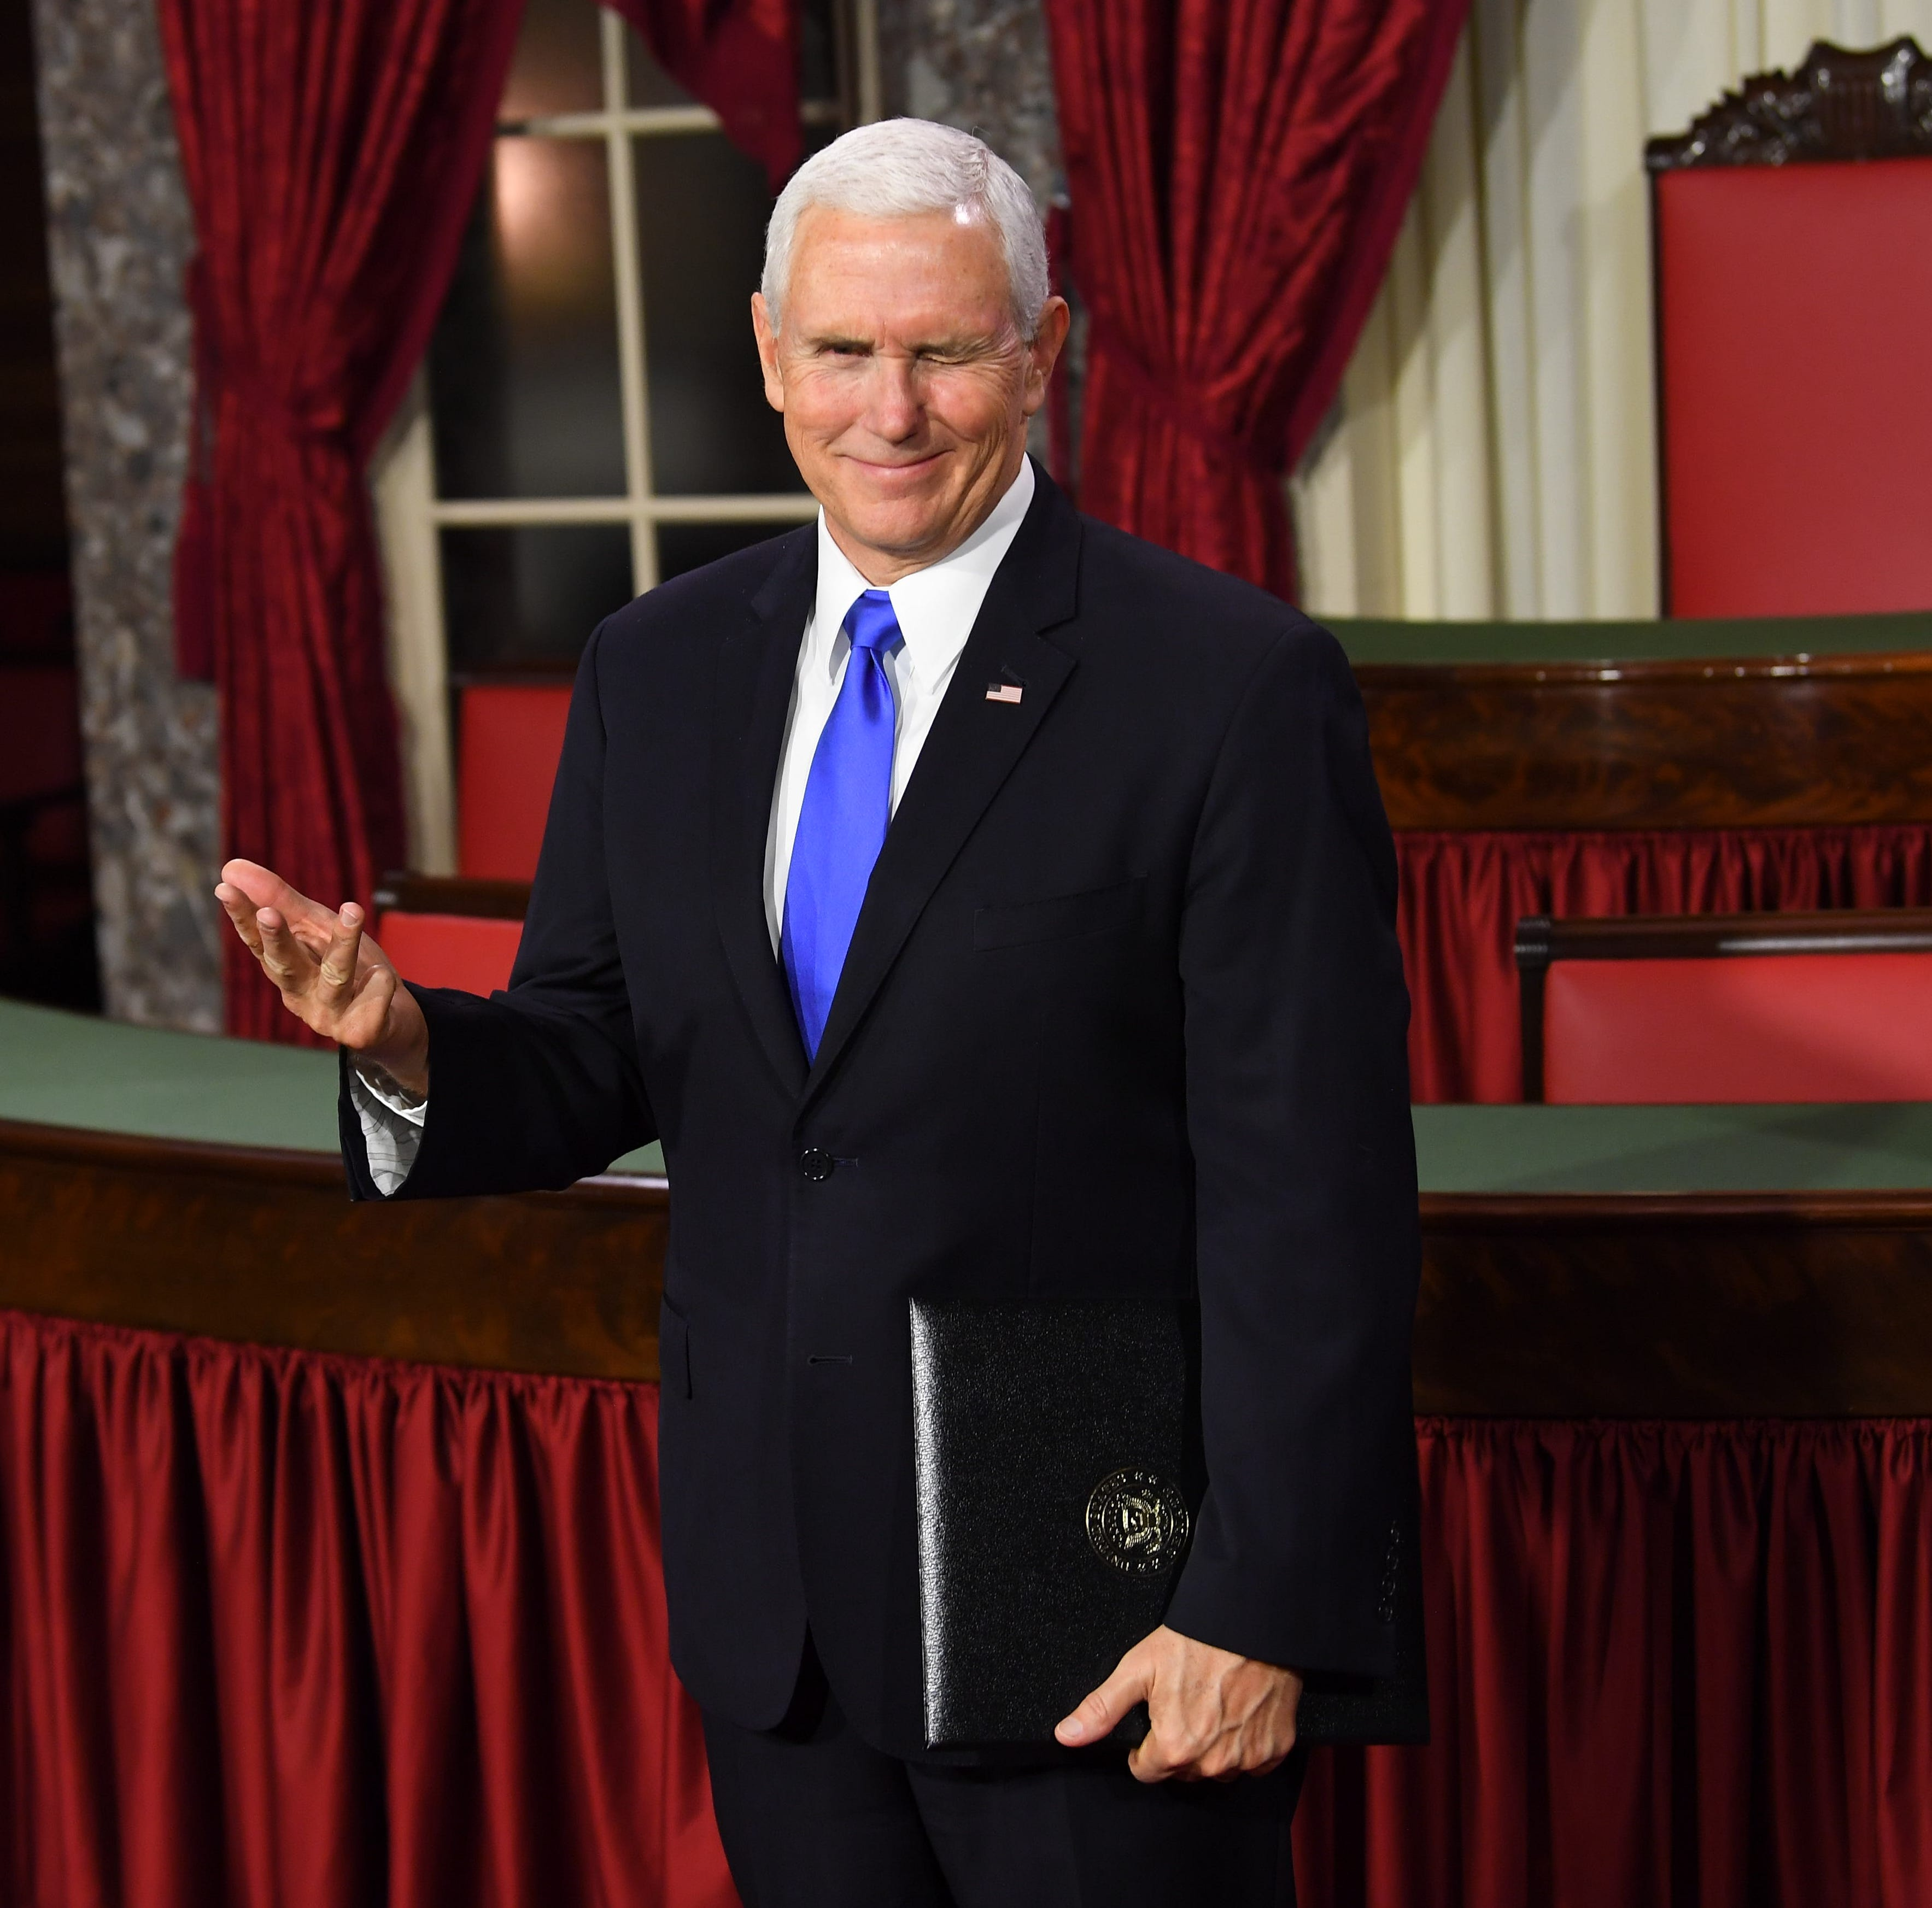 Is Vice President Mike Pence a decent guy? Critics say LGBTQ stance, Trump loyalty raise doubts